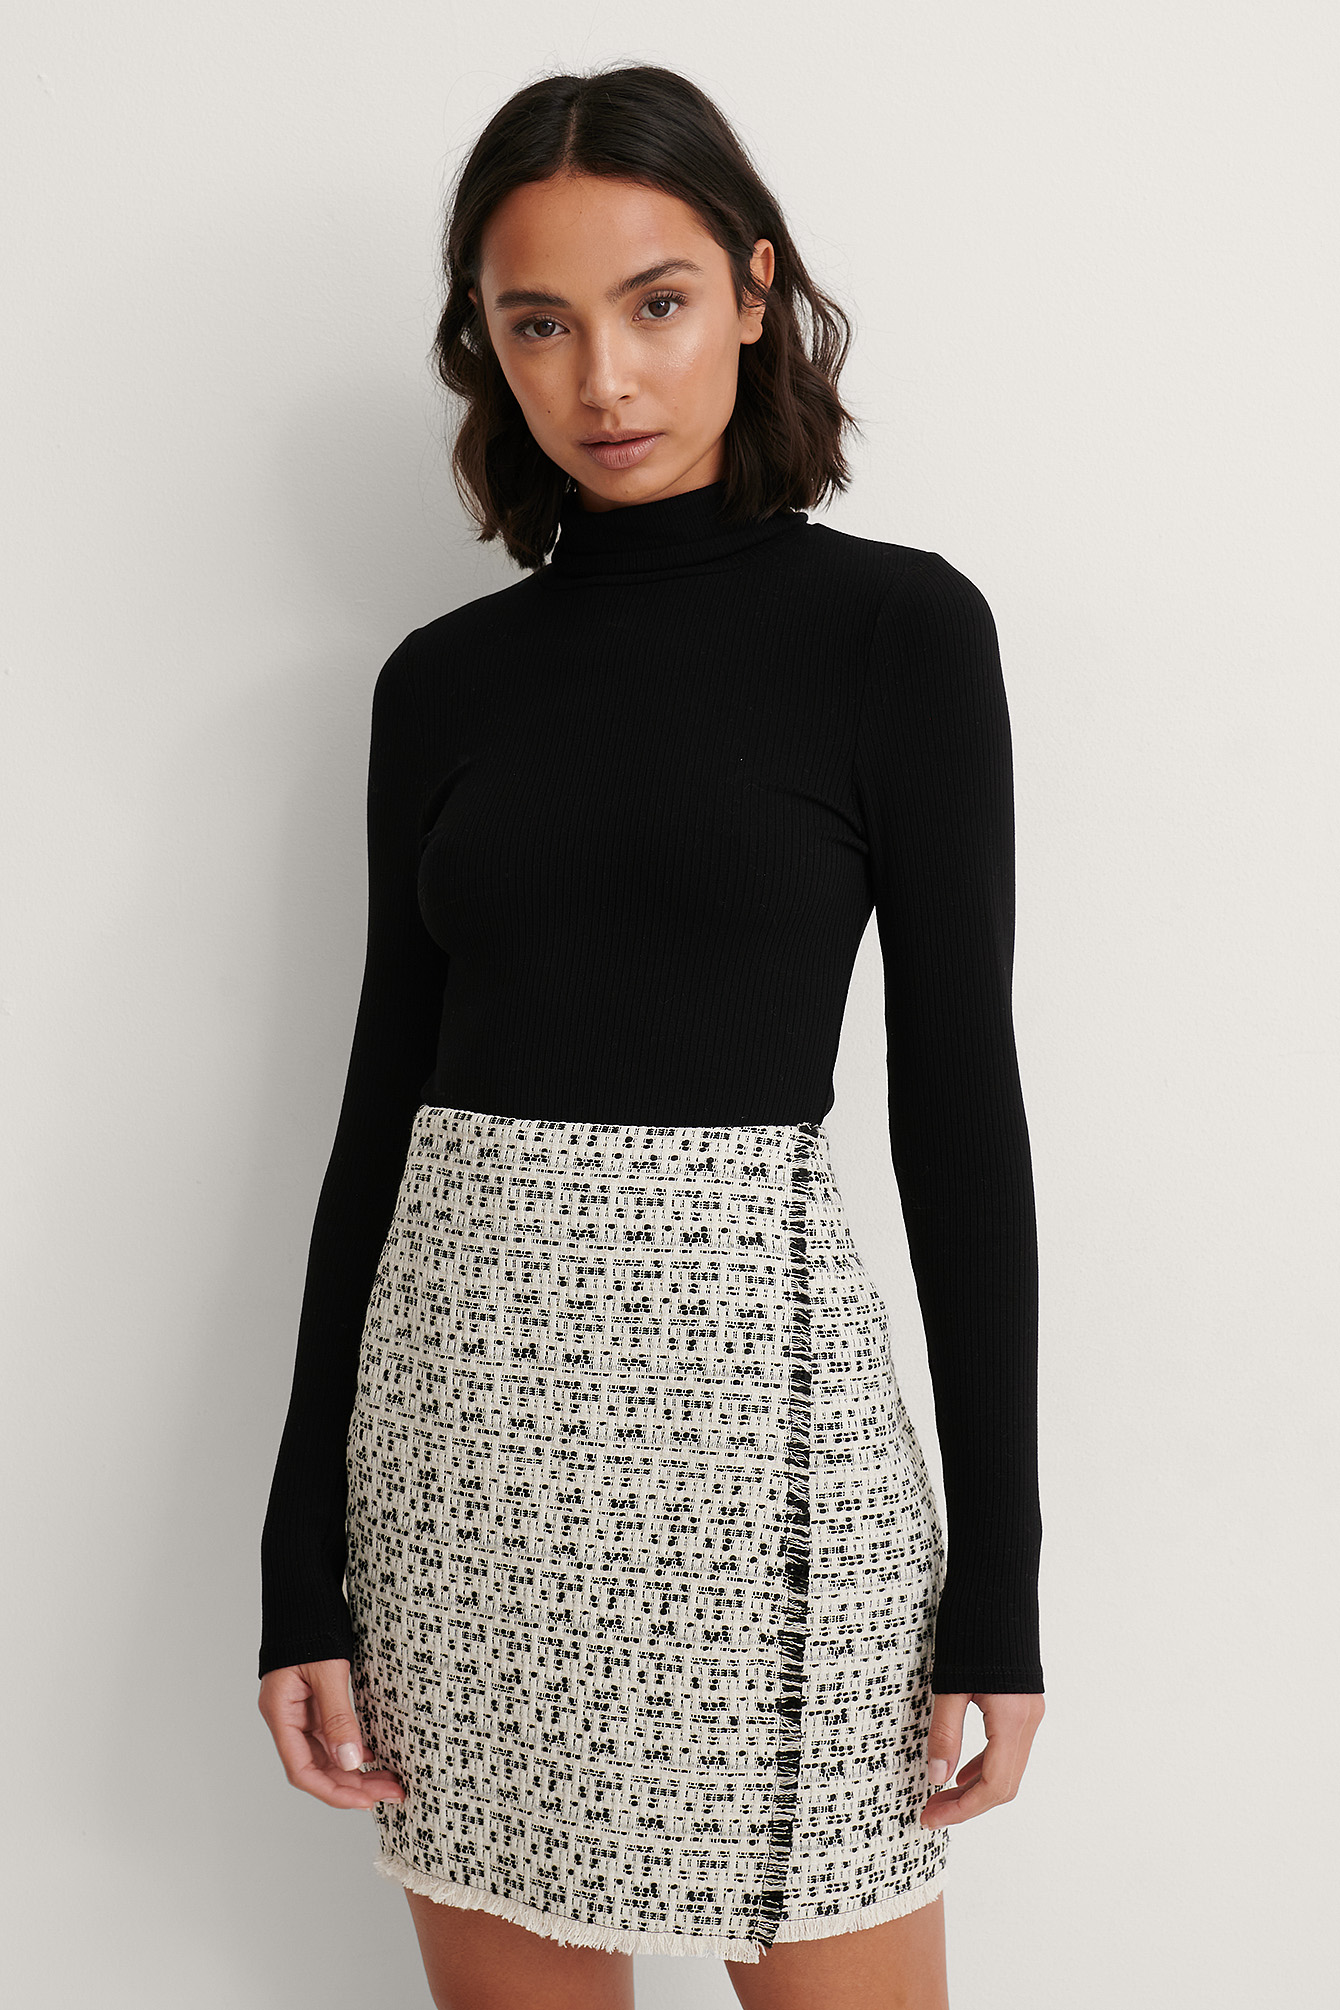 Black/White Raw Edge Tweed Skirt